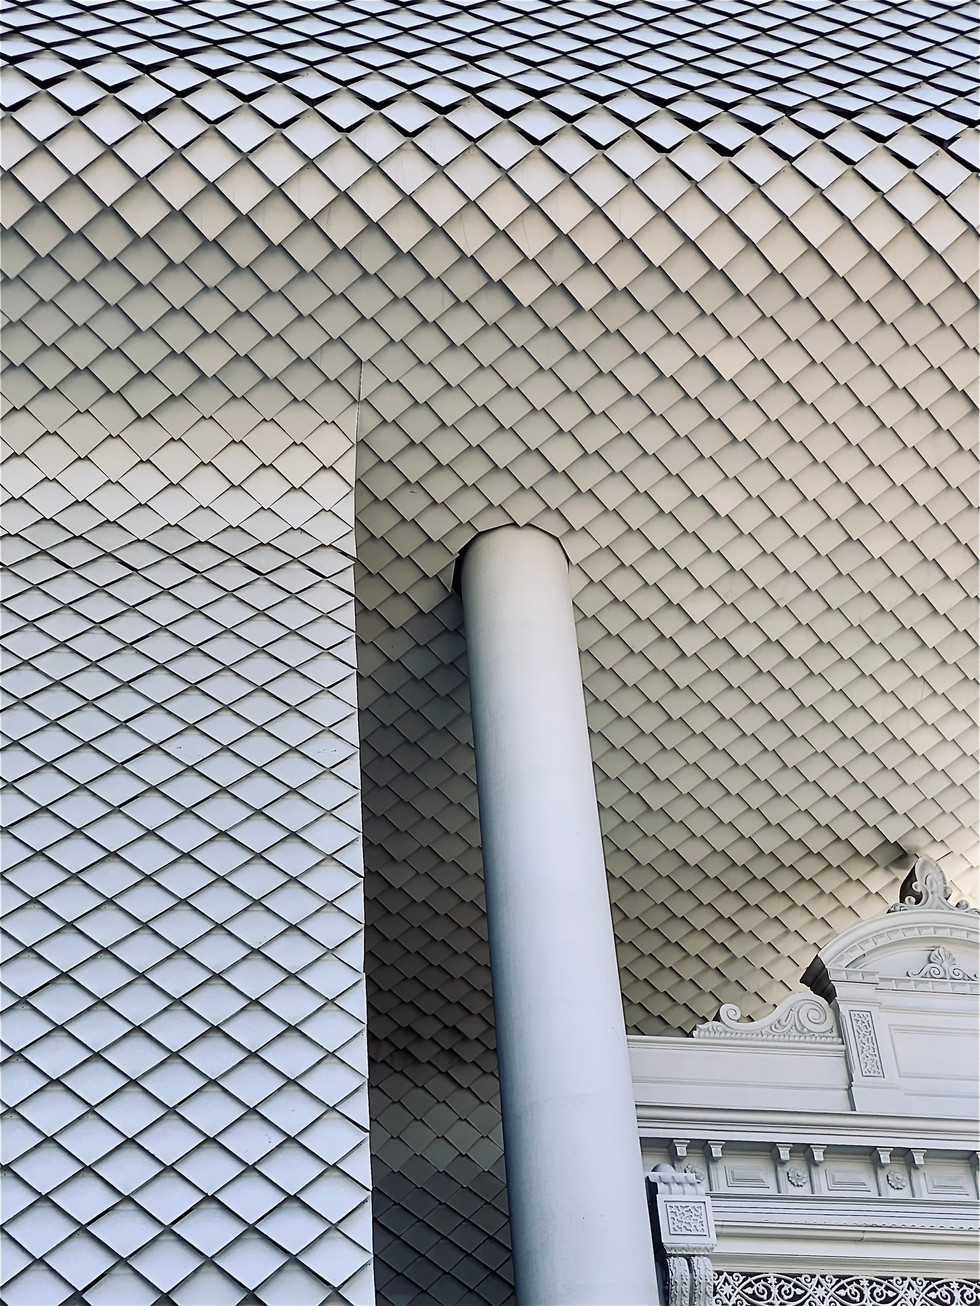 ARCHITECTURE_JAMHQ_Old vs new abstract a